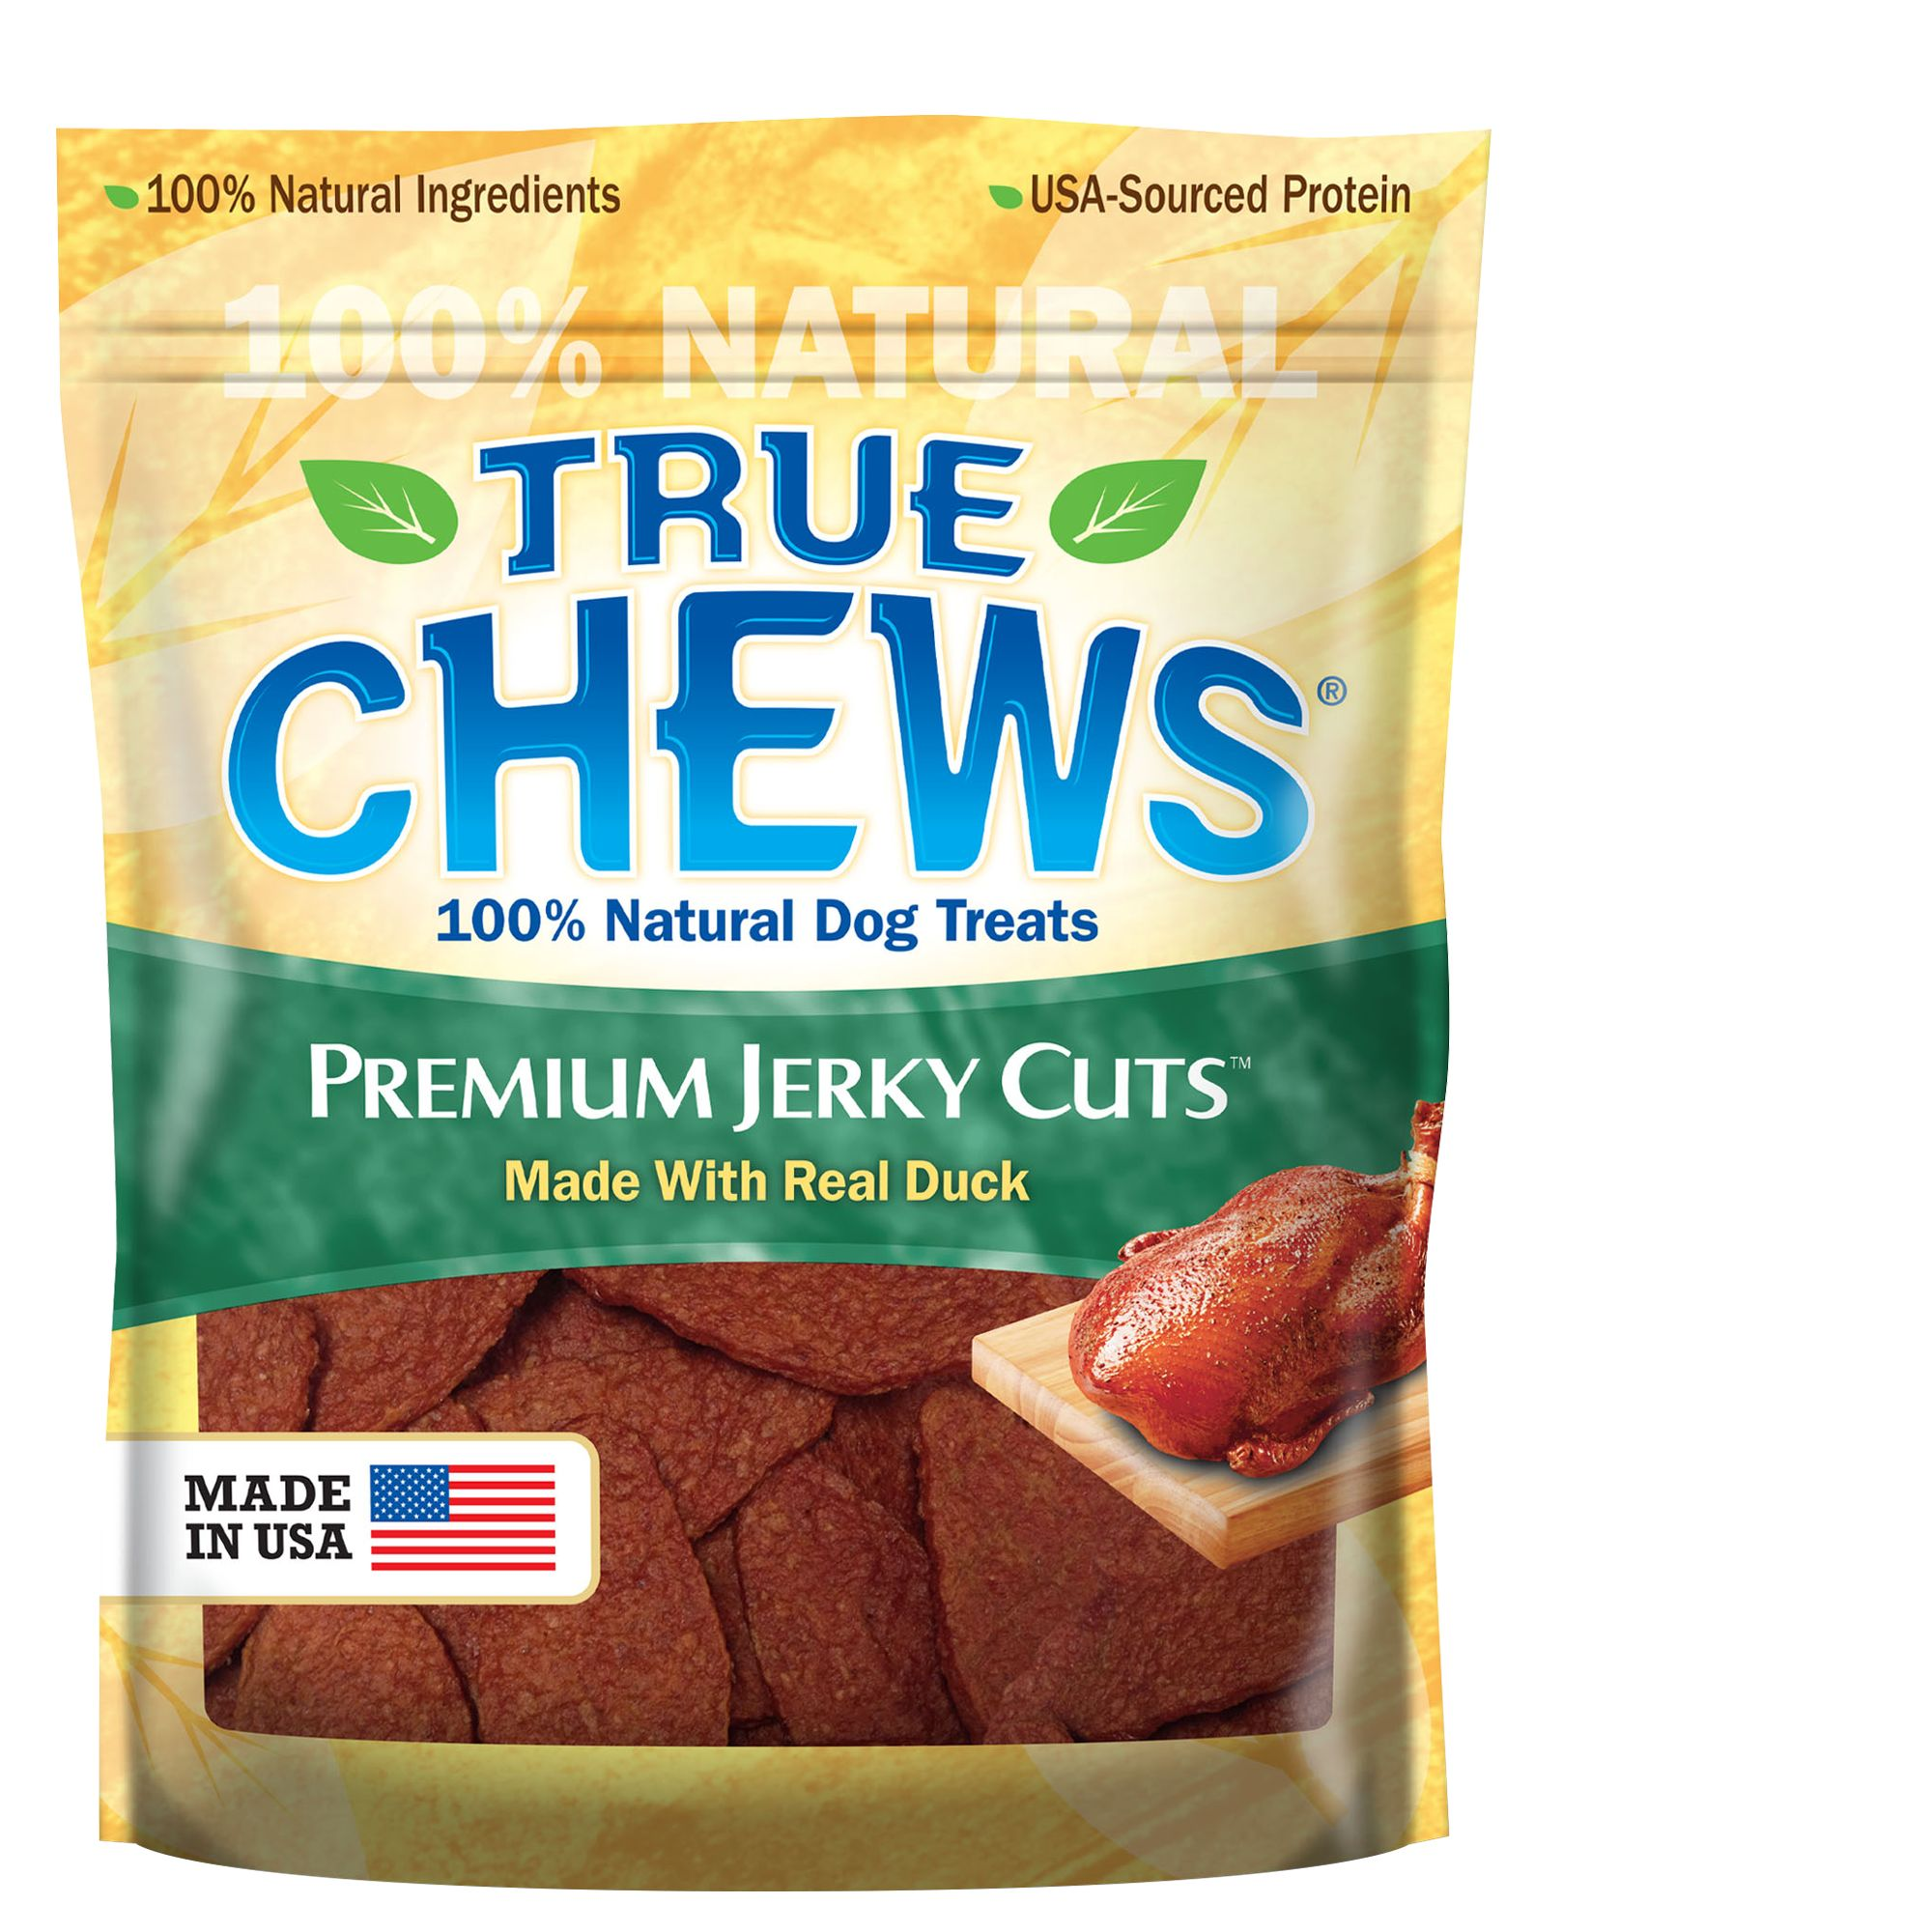 True Chews Premium Jerky Cuts Dog Treat Natural Duck Size 22 Oz